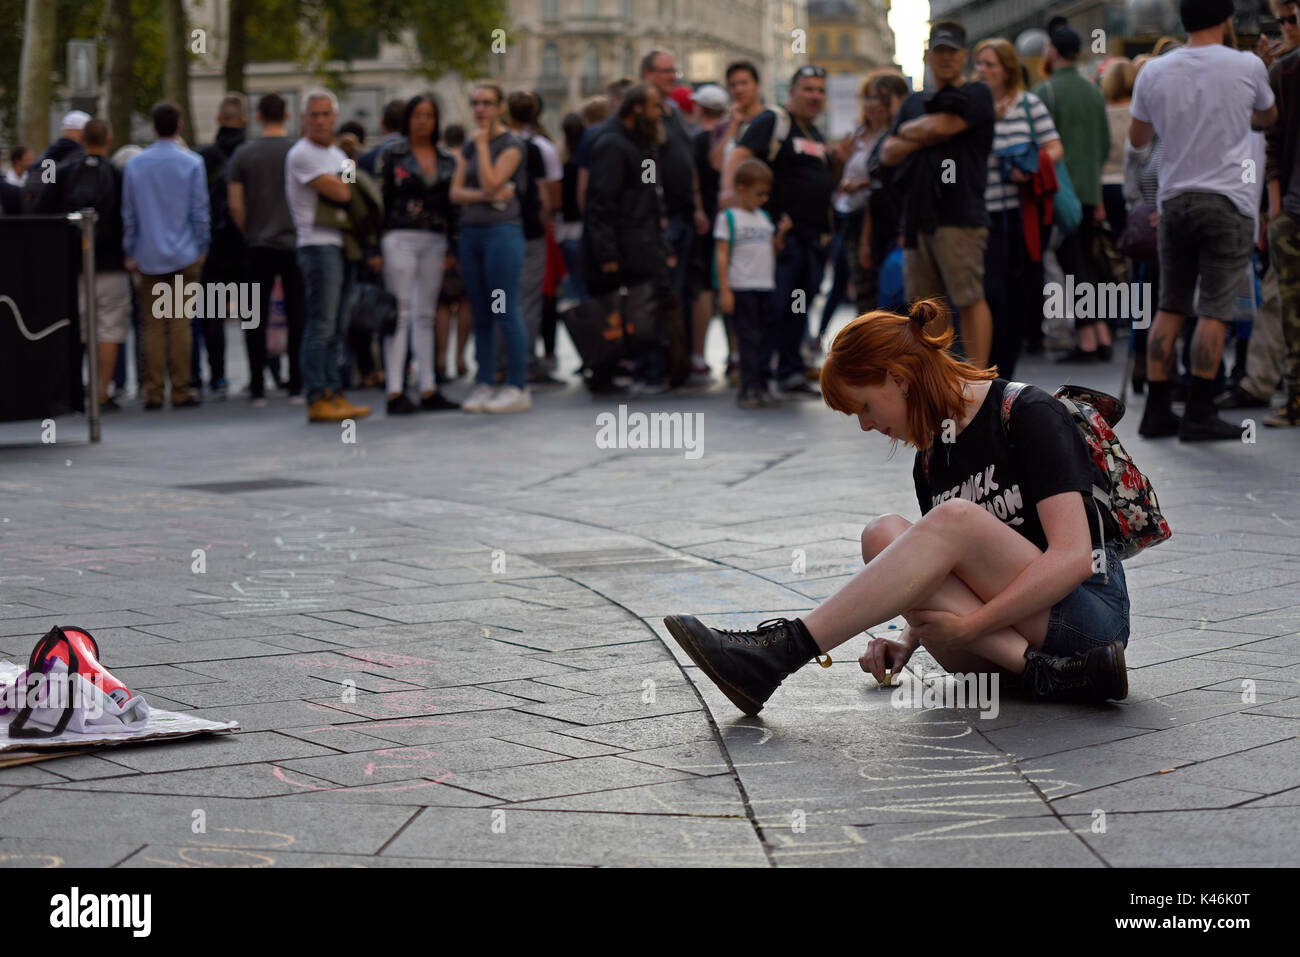 Animal rights activists protesting outside Burger King in Leicester Square, London. Female activist chalking slogans onto the pavement. Space for copy - Stock Image